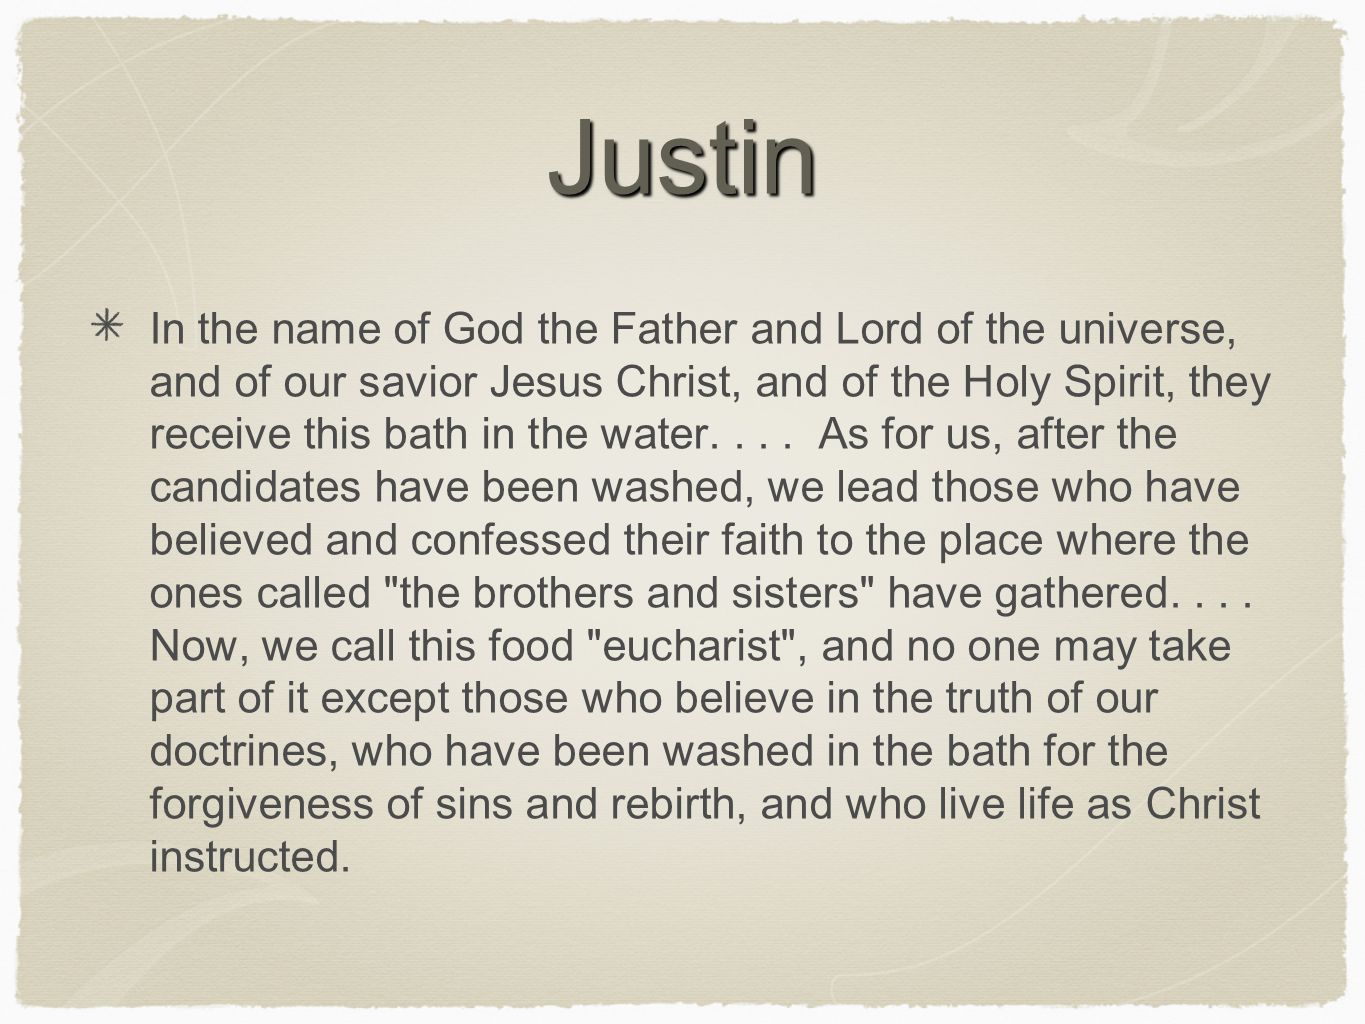 Justin In the name of God the Father and Lord of the universe, and of our savior Jesus Christ, and of the Holy Spirit, they receive this bath in the w